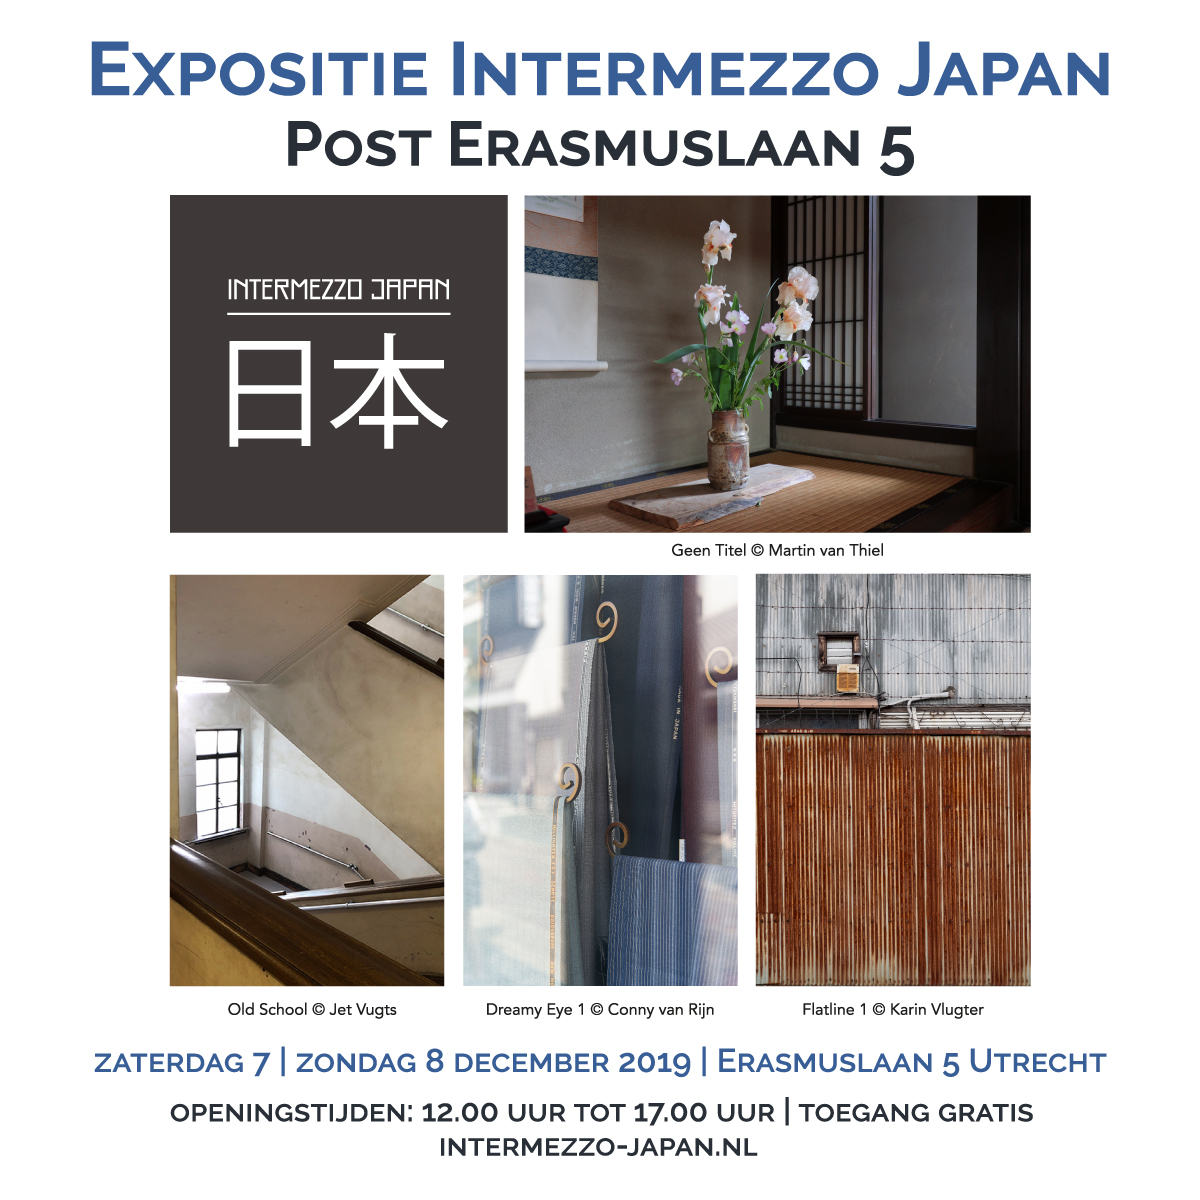 Expositie Intermezzo Japan